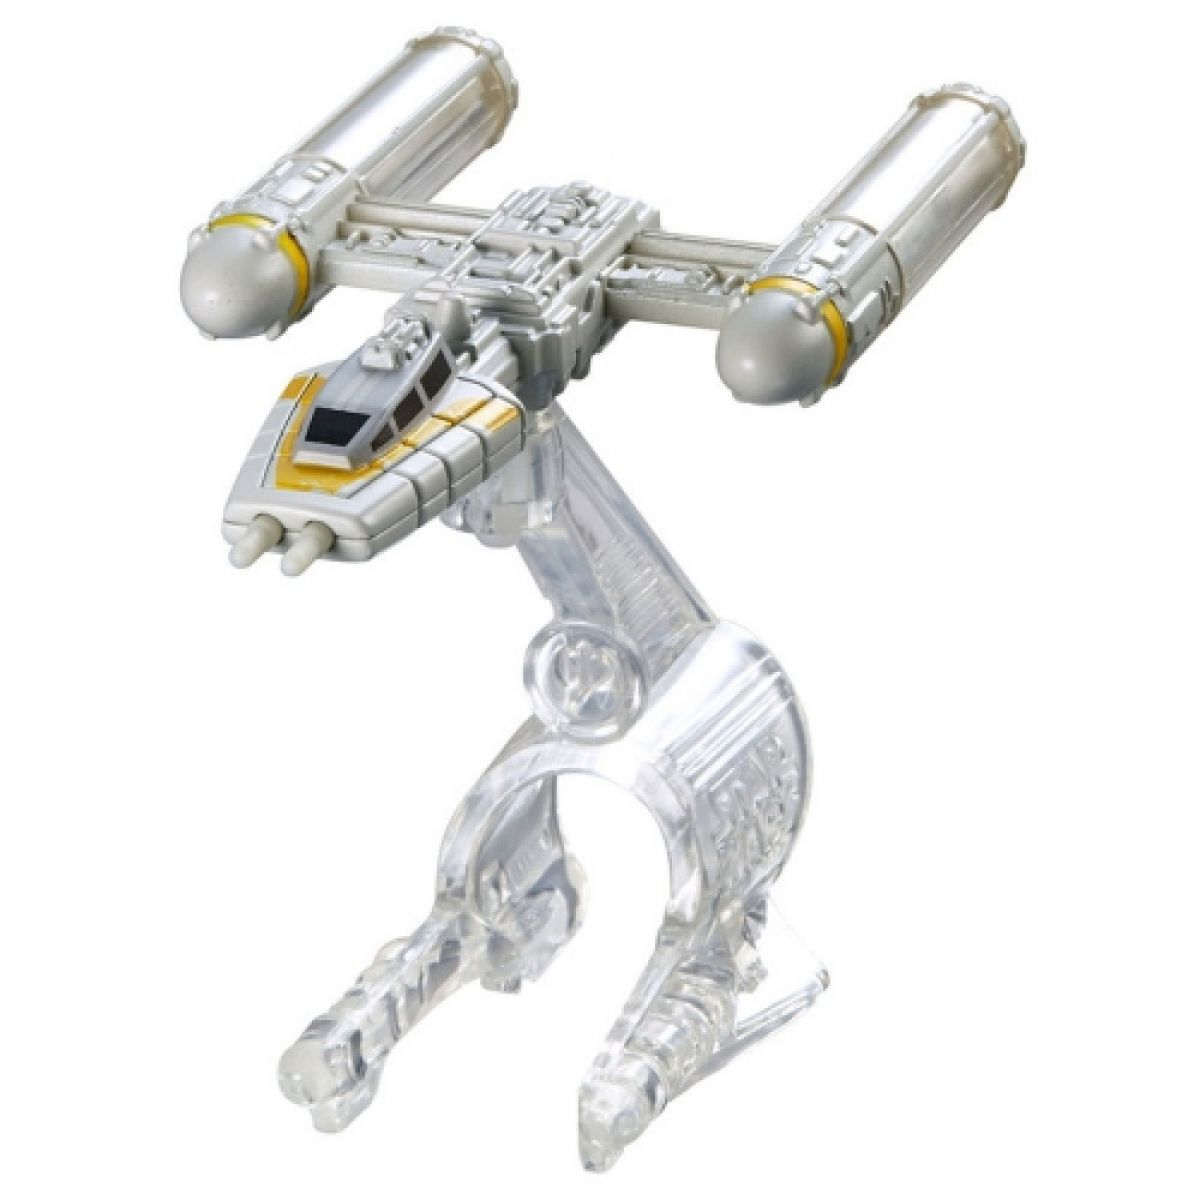 Hot Wheels Star Wars Starship 1ks - Y-Wing Fighter DXX54